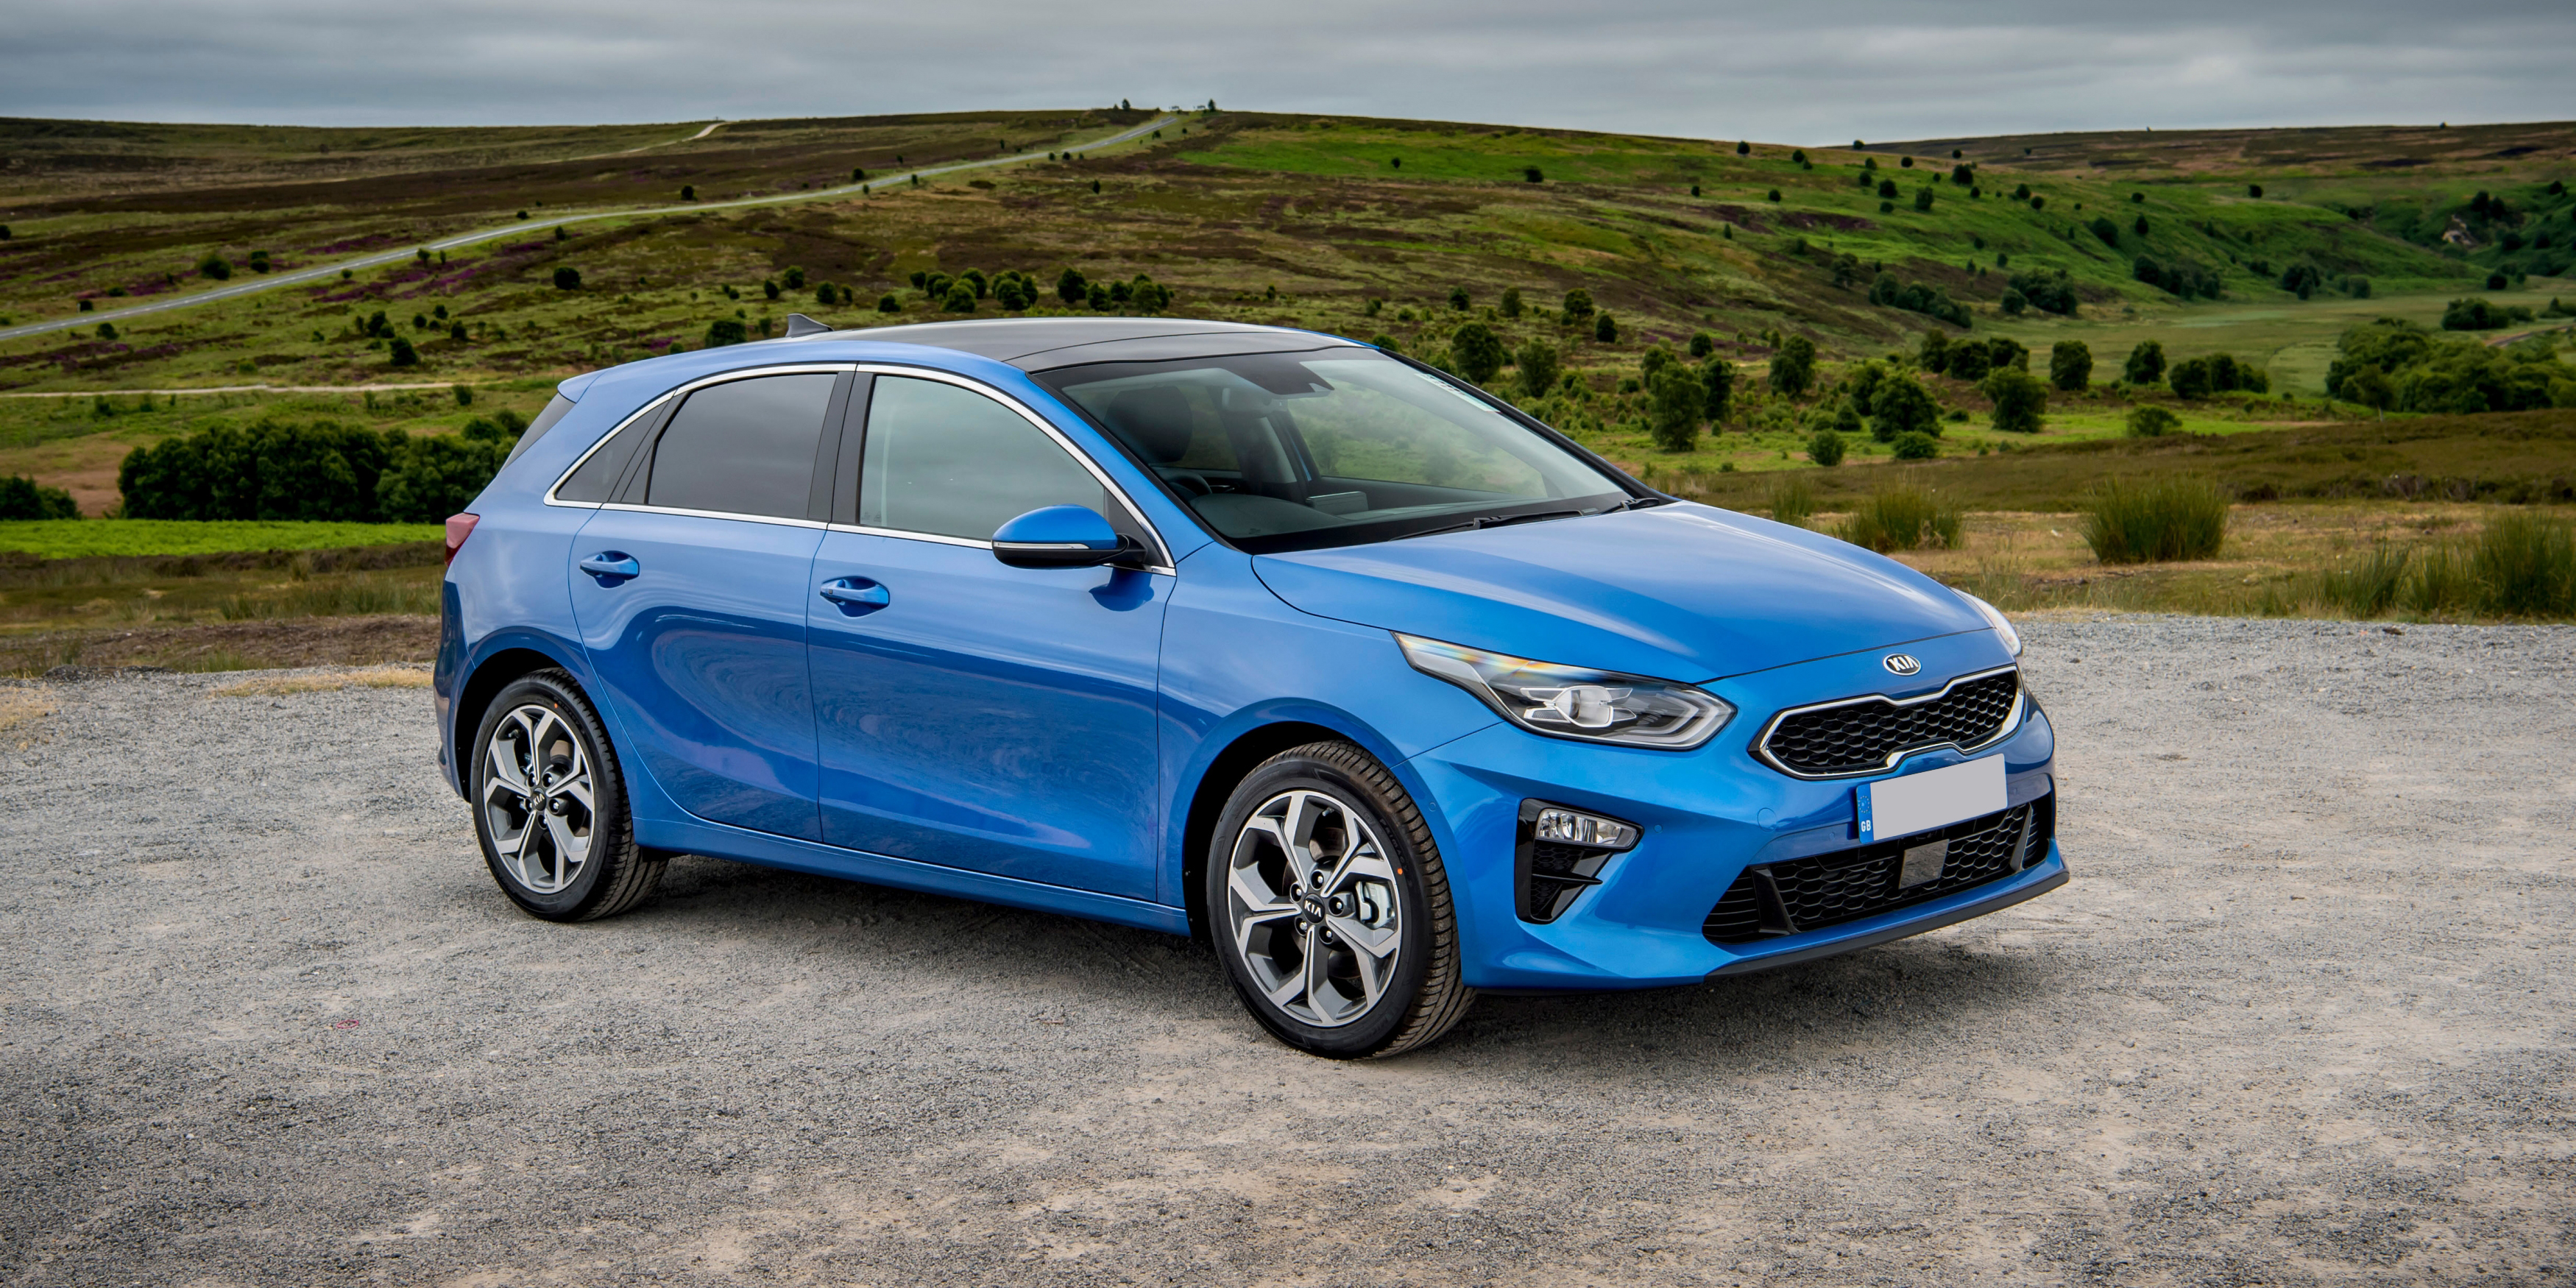 New Kia Ceed Review Carwow